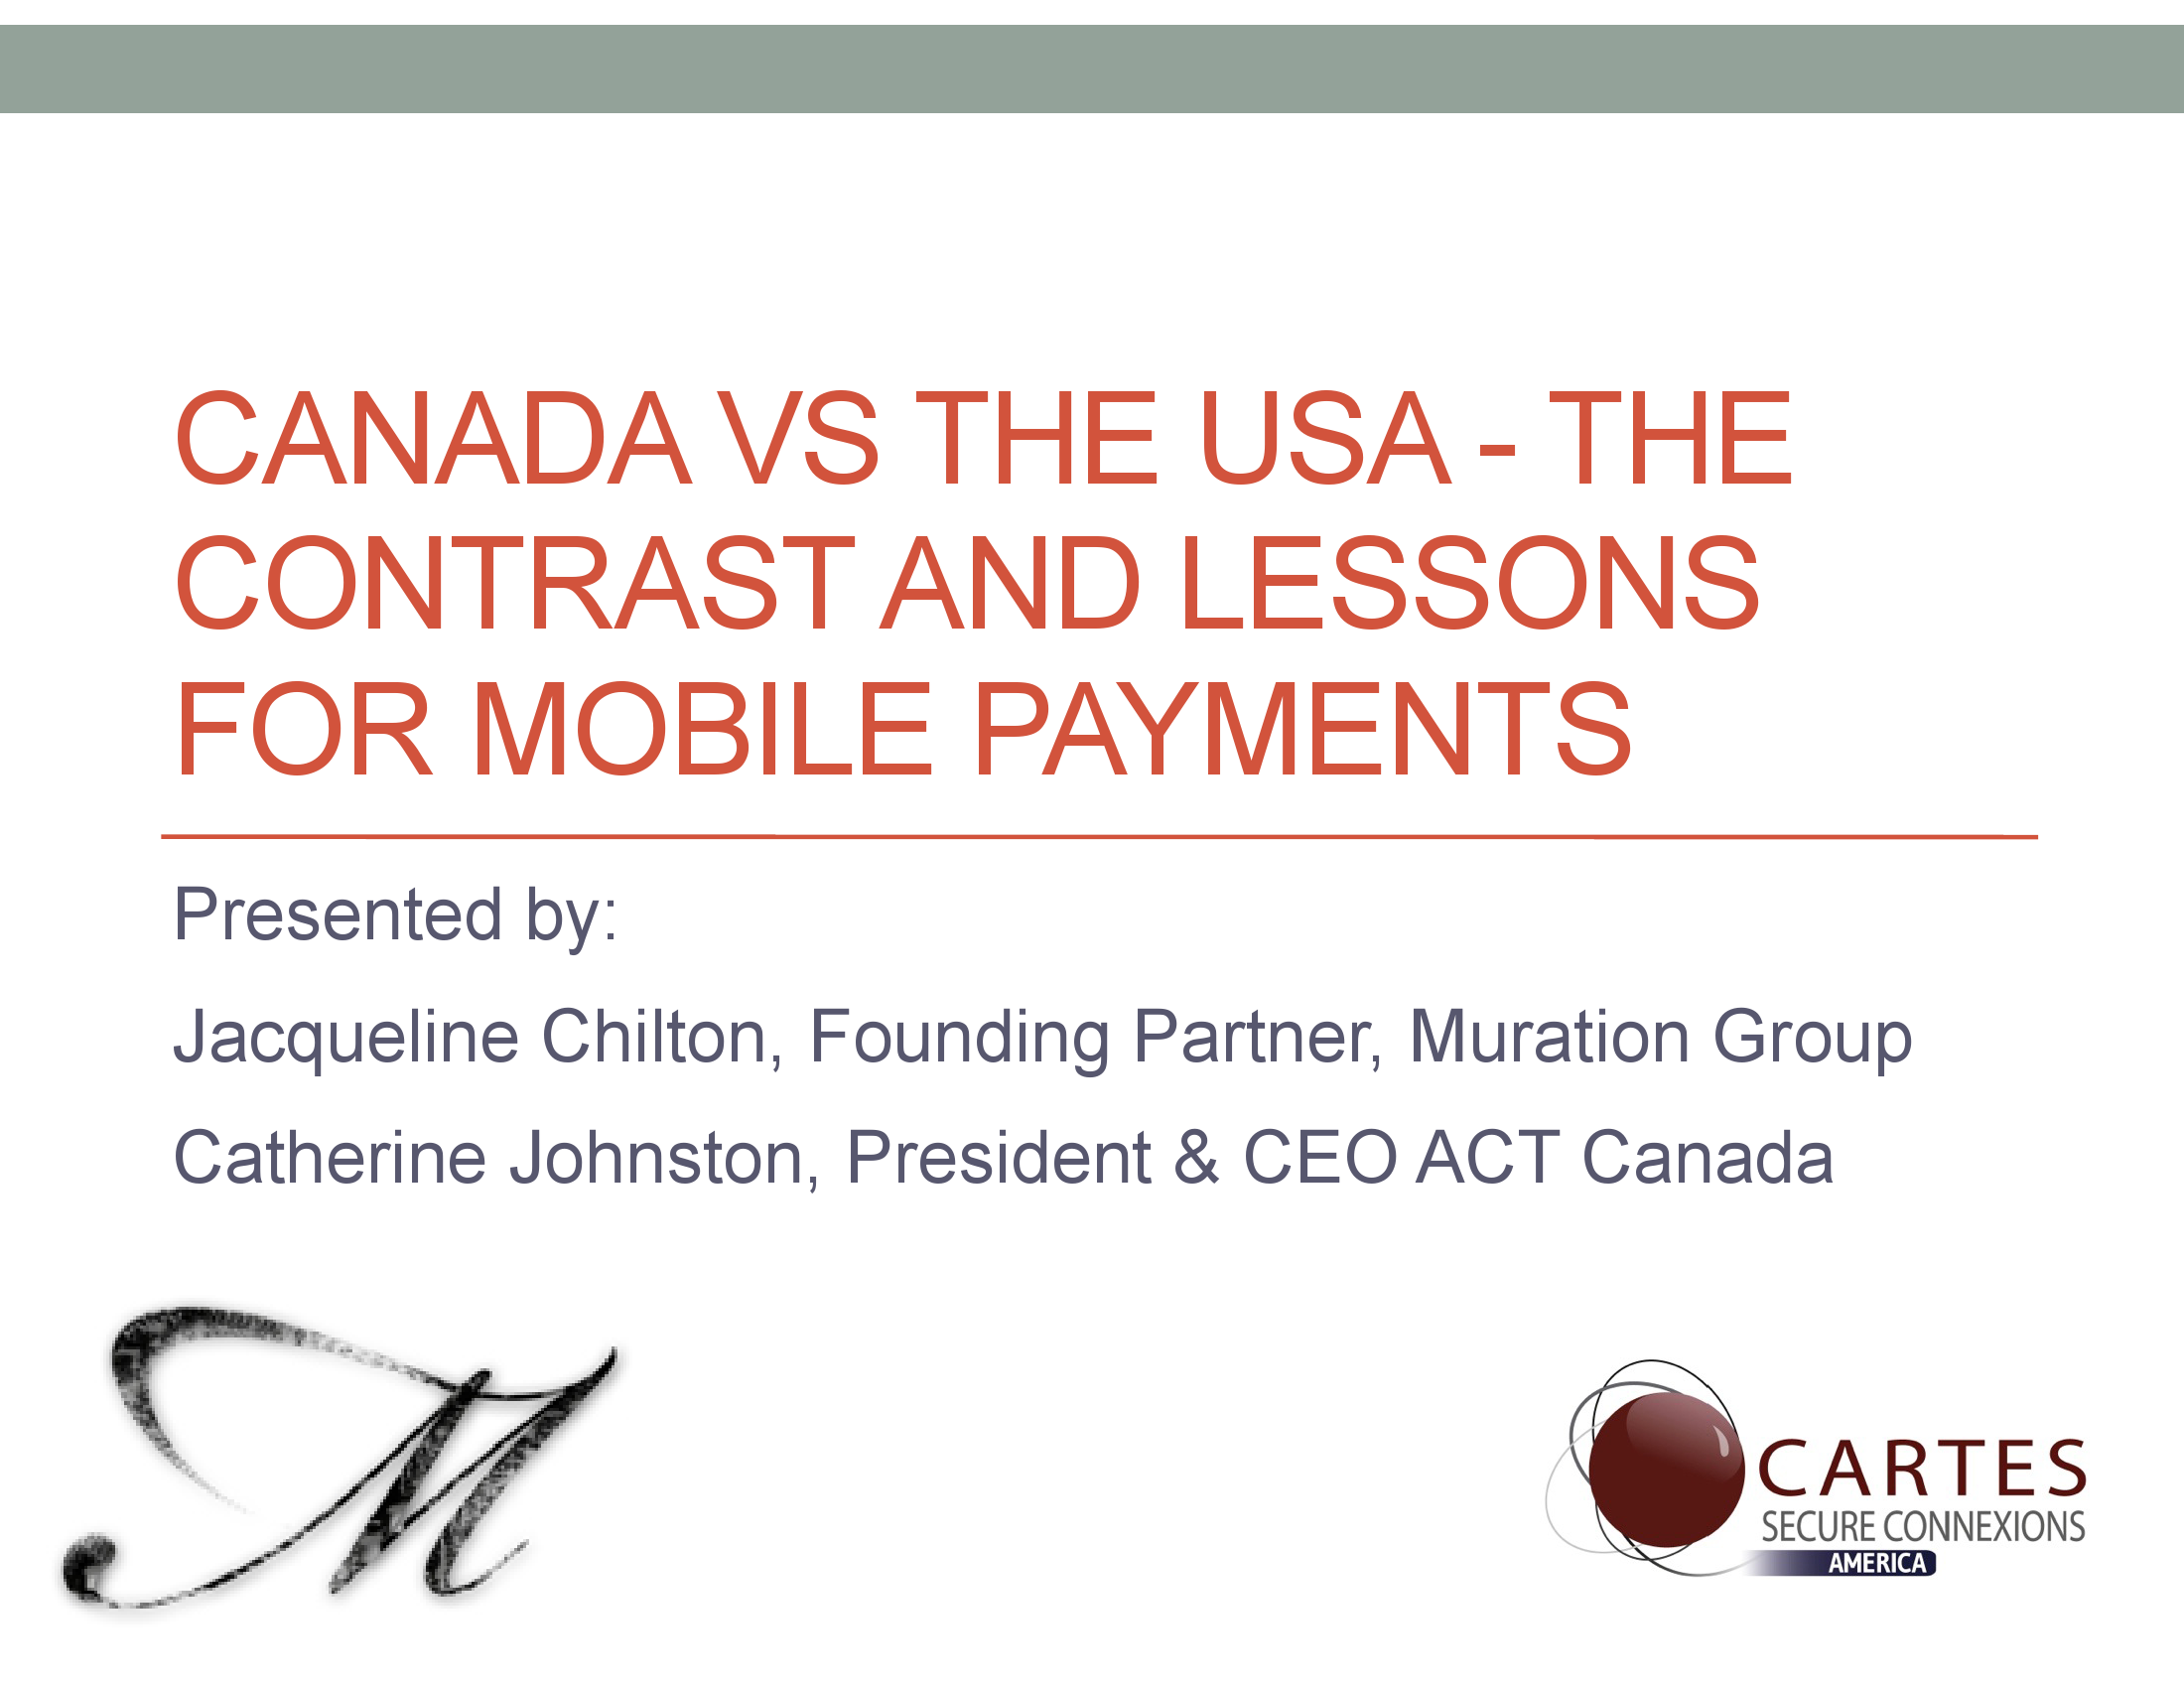 Canada-vs-the-USA-Mobile-Pmts-Jacqueline-Chilton_000001